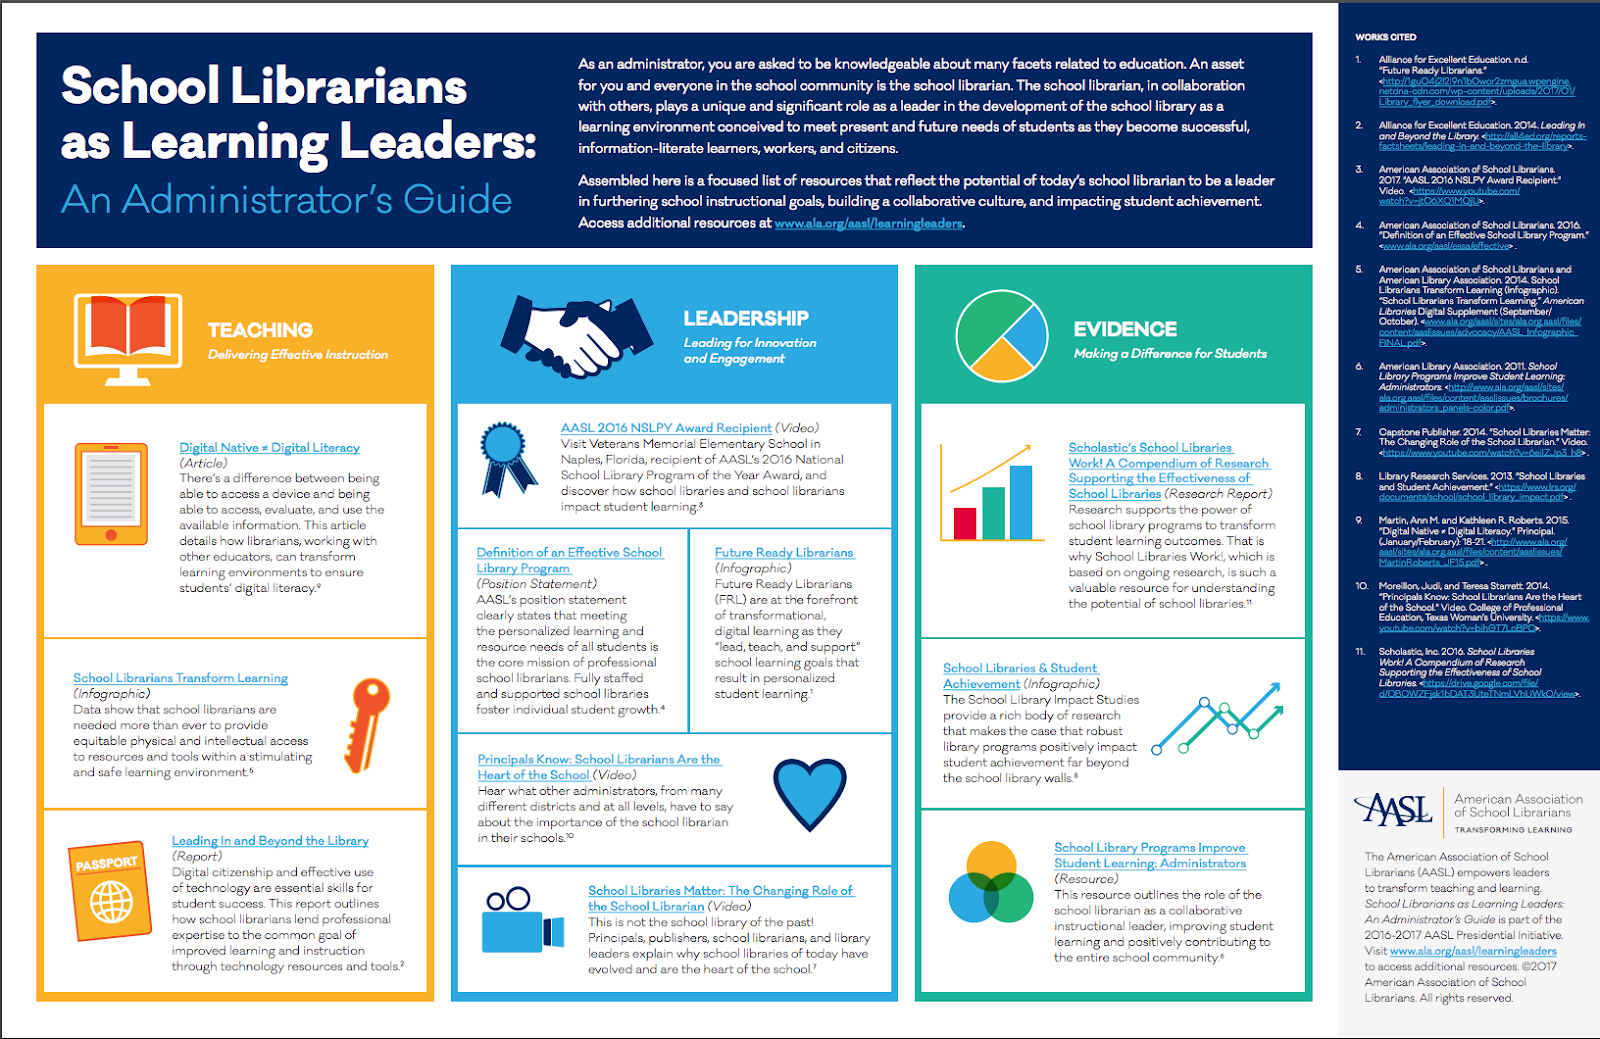 AASL School Librarians as Learning Leaders: An Administrator's Guide Infographic